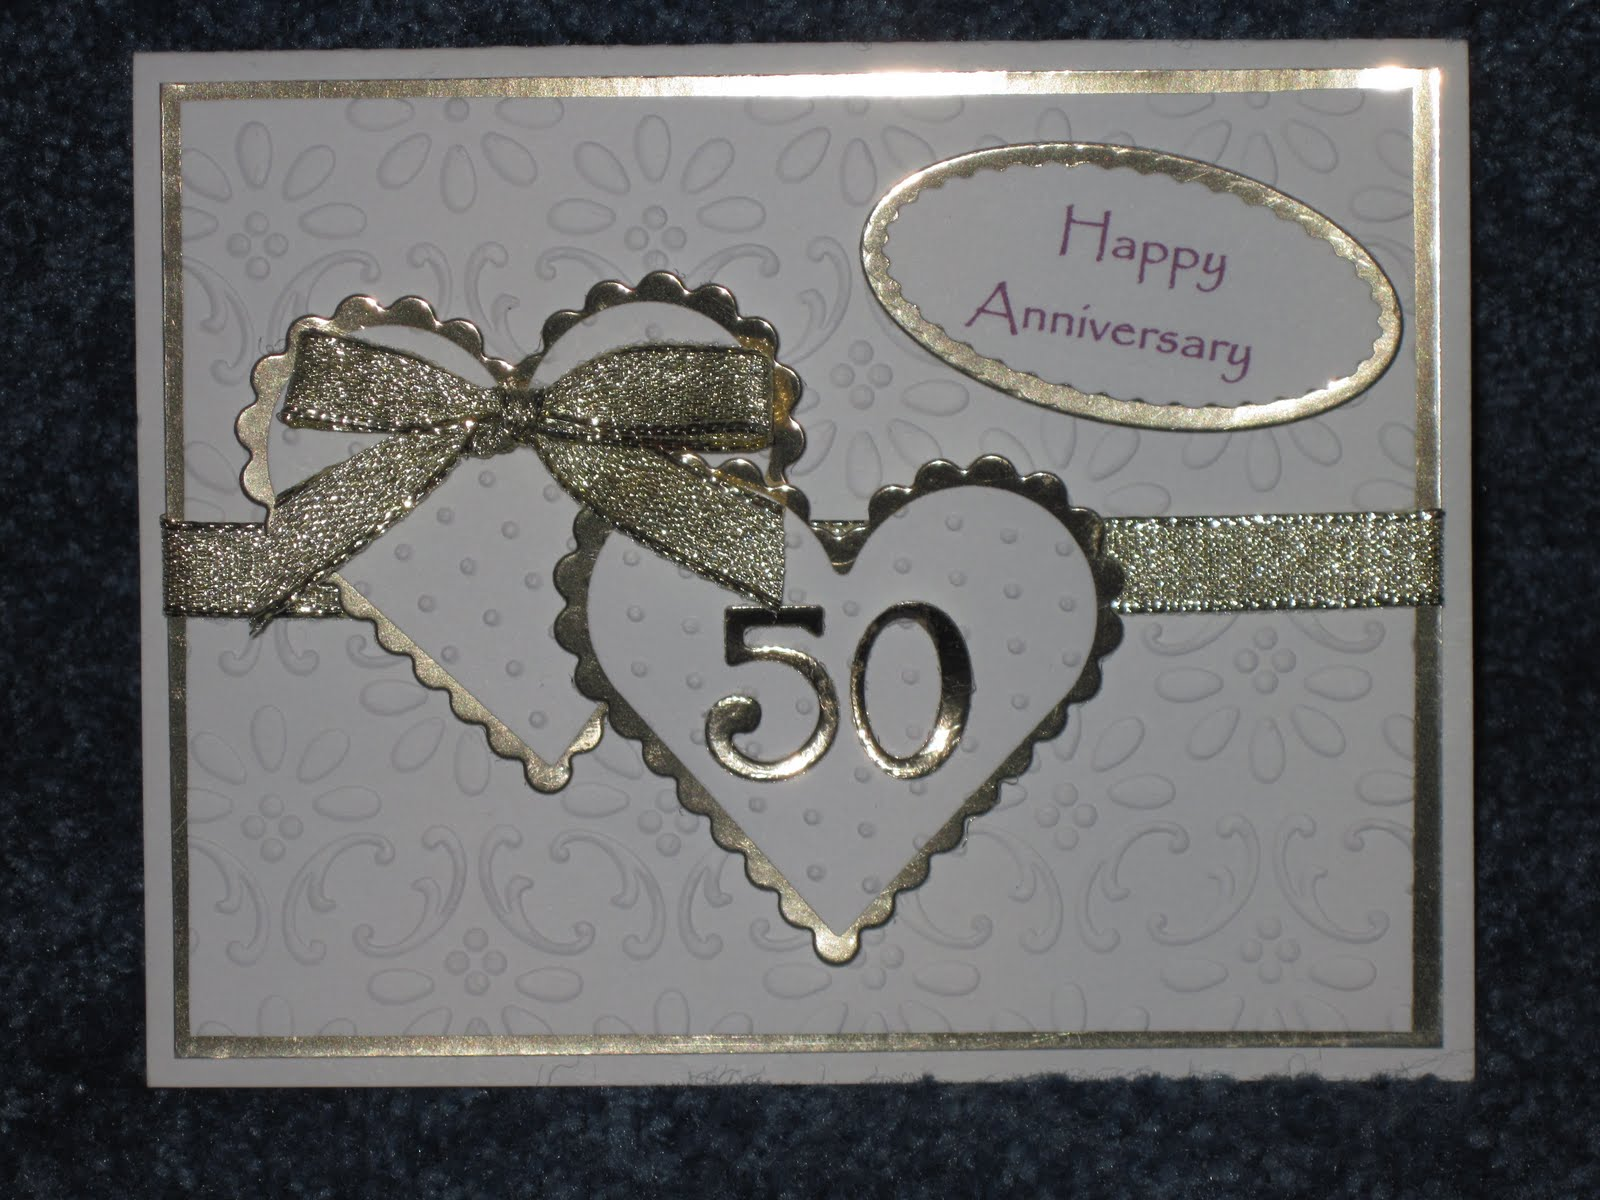 1 Year Anniversary Gifts For Her Yahoo : ... ideas see more about iron anniversary gifts 6th anniversary and 6 year